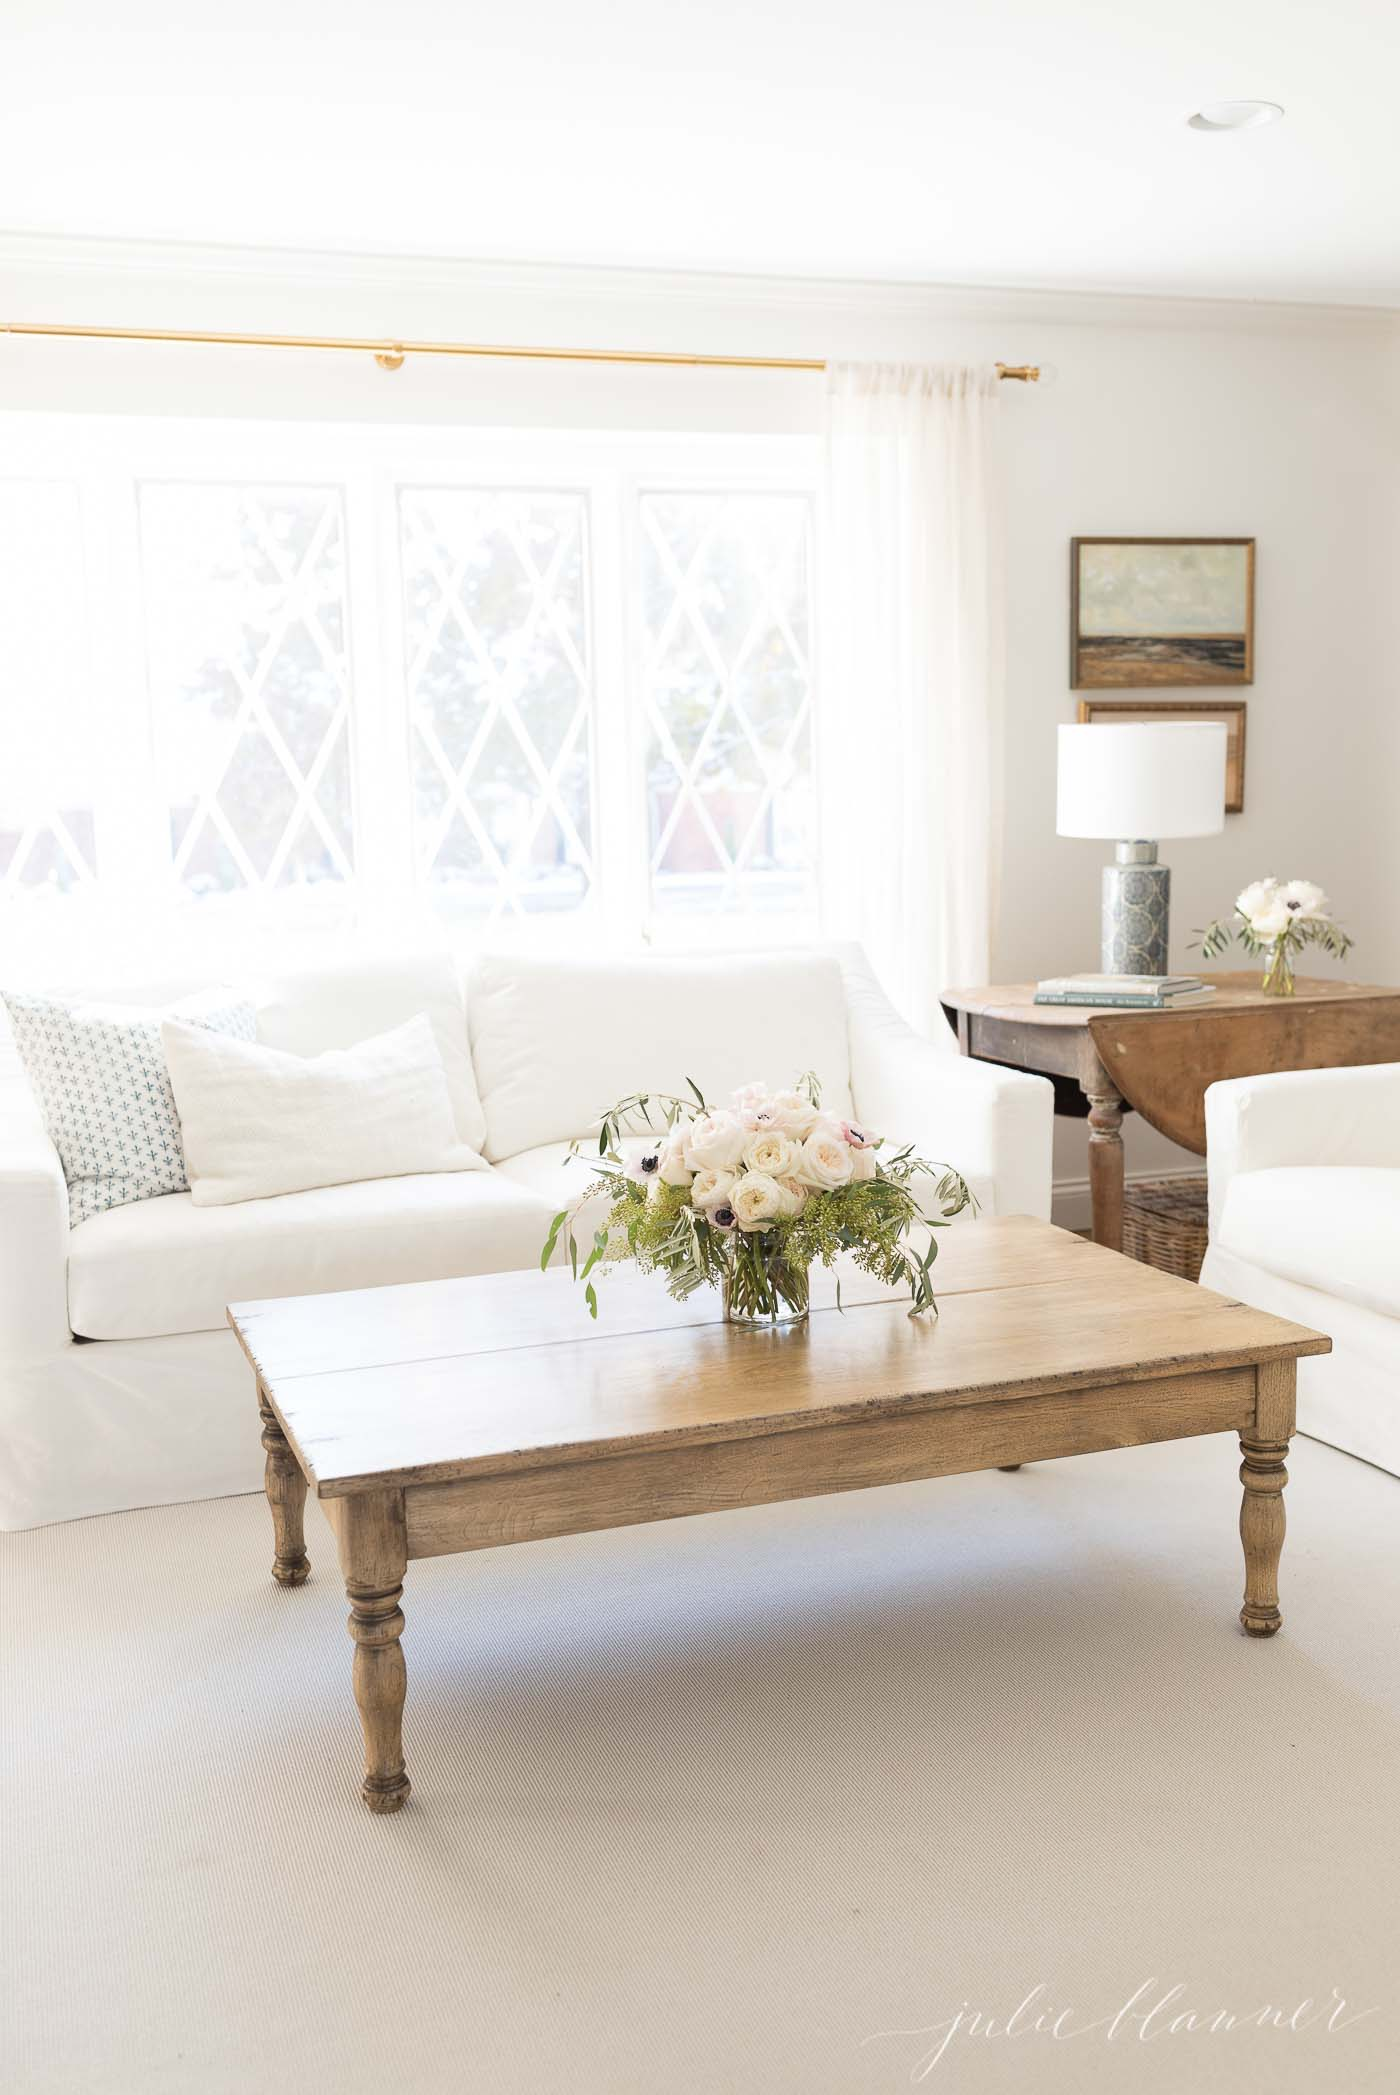 A cream and white living room with a wood coffee table.